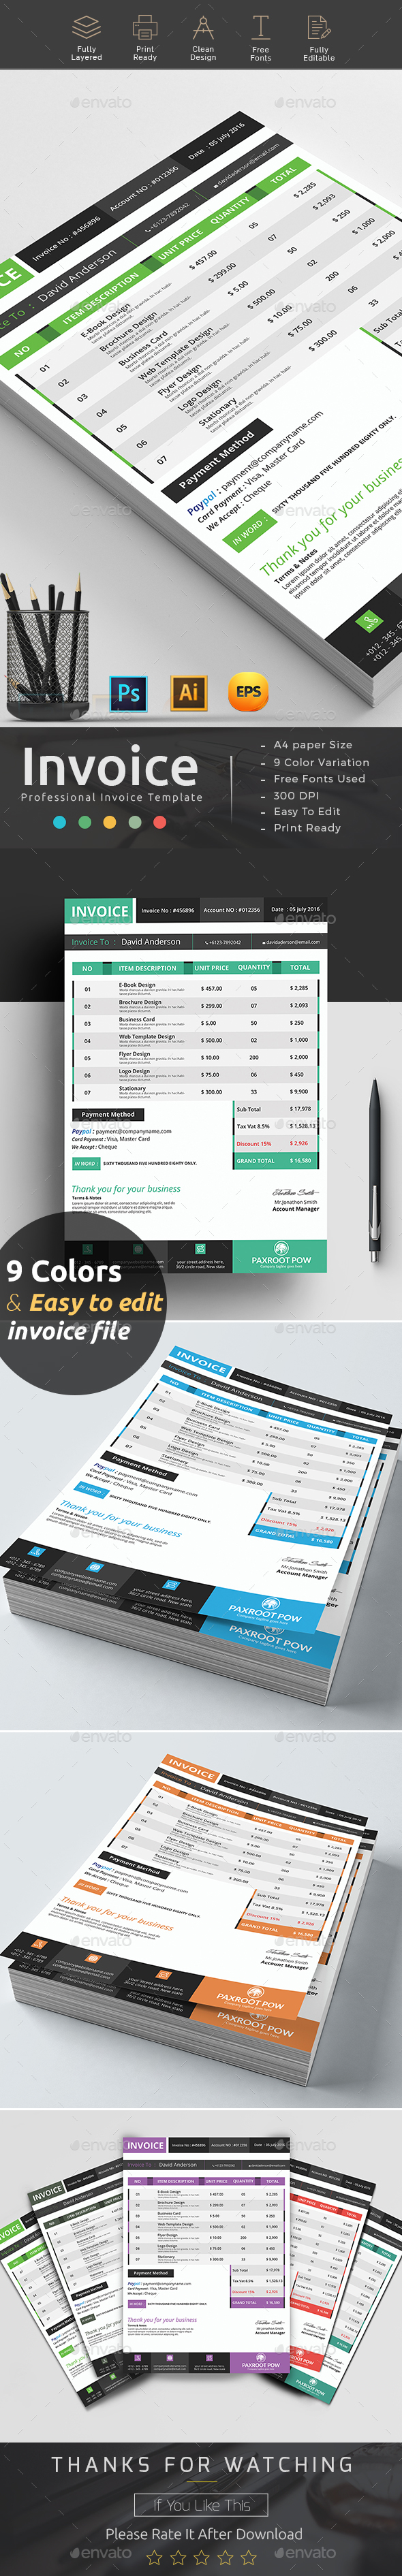 Factura Graphics, Designs & Templates from GraphicRiver